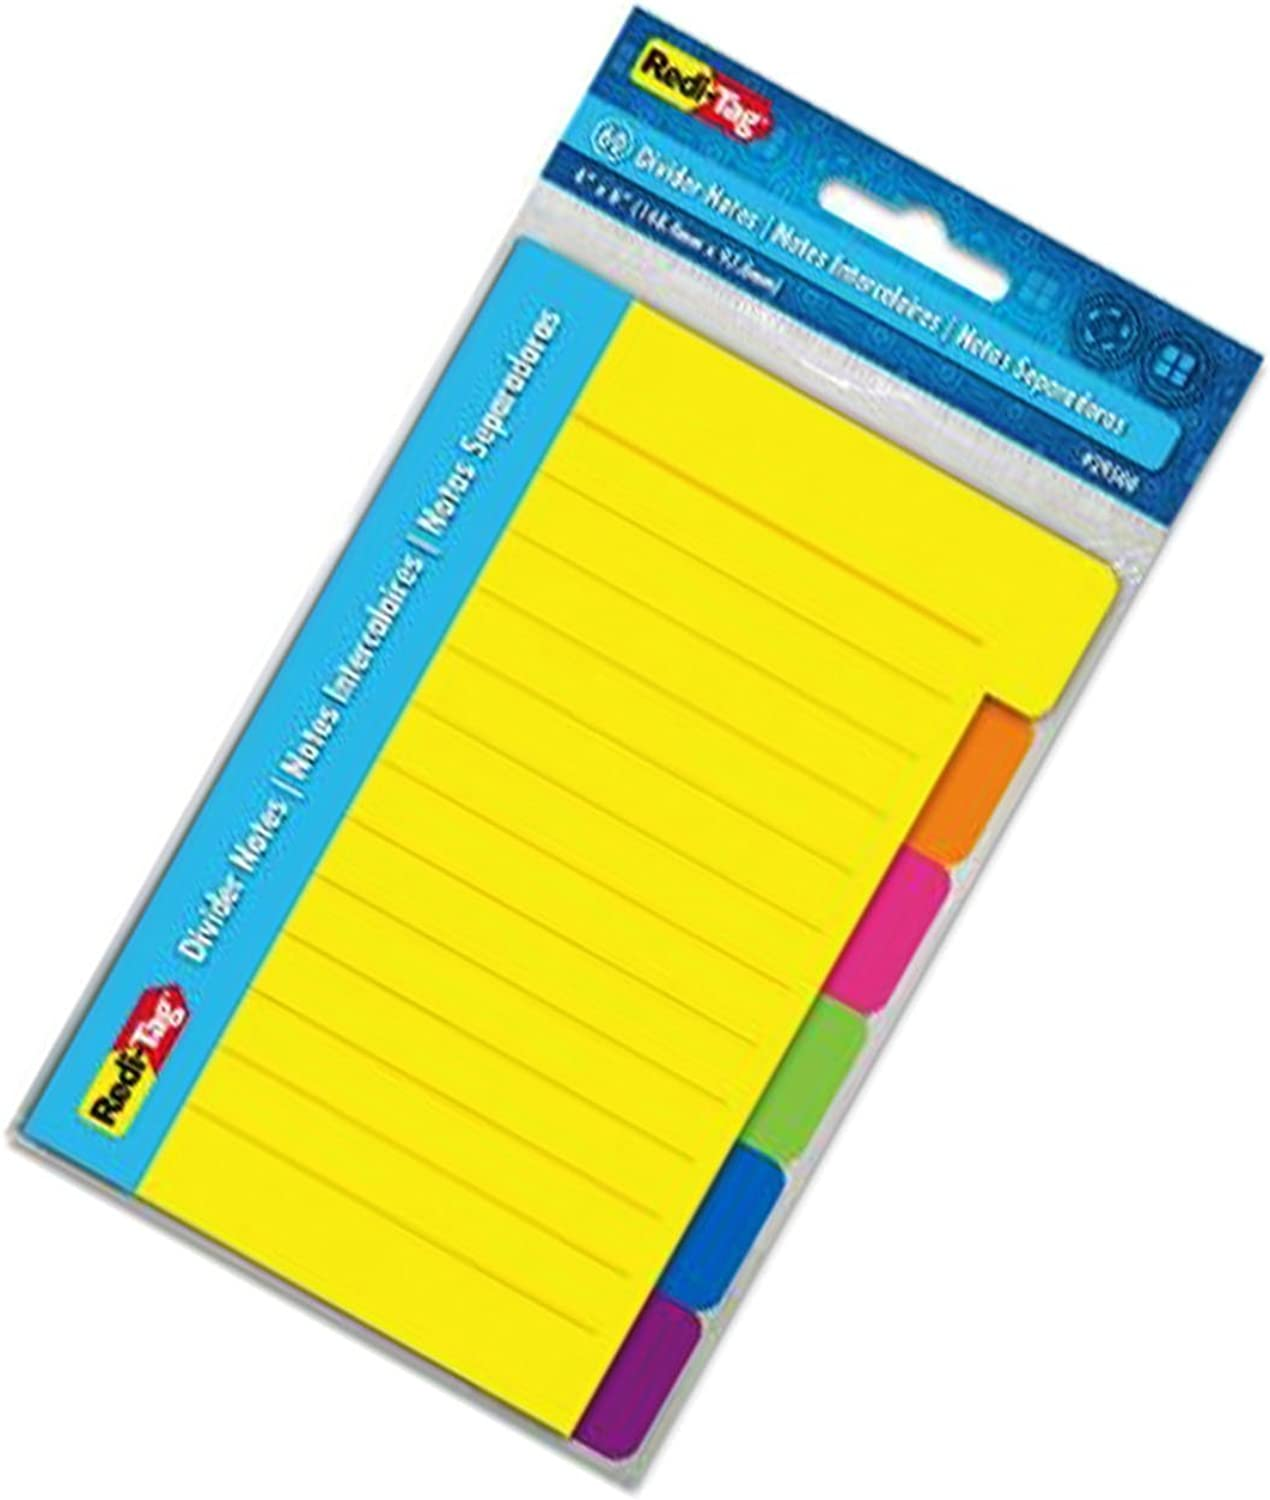 roti-Tag Divider Sticky Sticky Sticky Notes 60 Ruled Notes, 4 x 6 Inches, Assorted Neon Farbes (29500), 2-pack by roti-Tag B00UEWBDGE | Um Eine Hohe Bewunderung Gewinnen Und Ist Weit Verbreitet Trusted In-und 